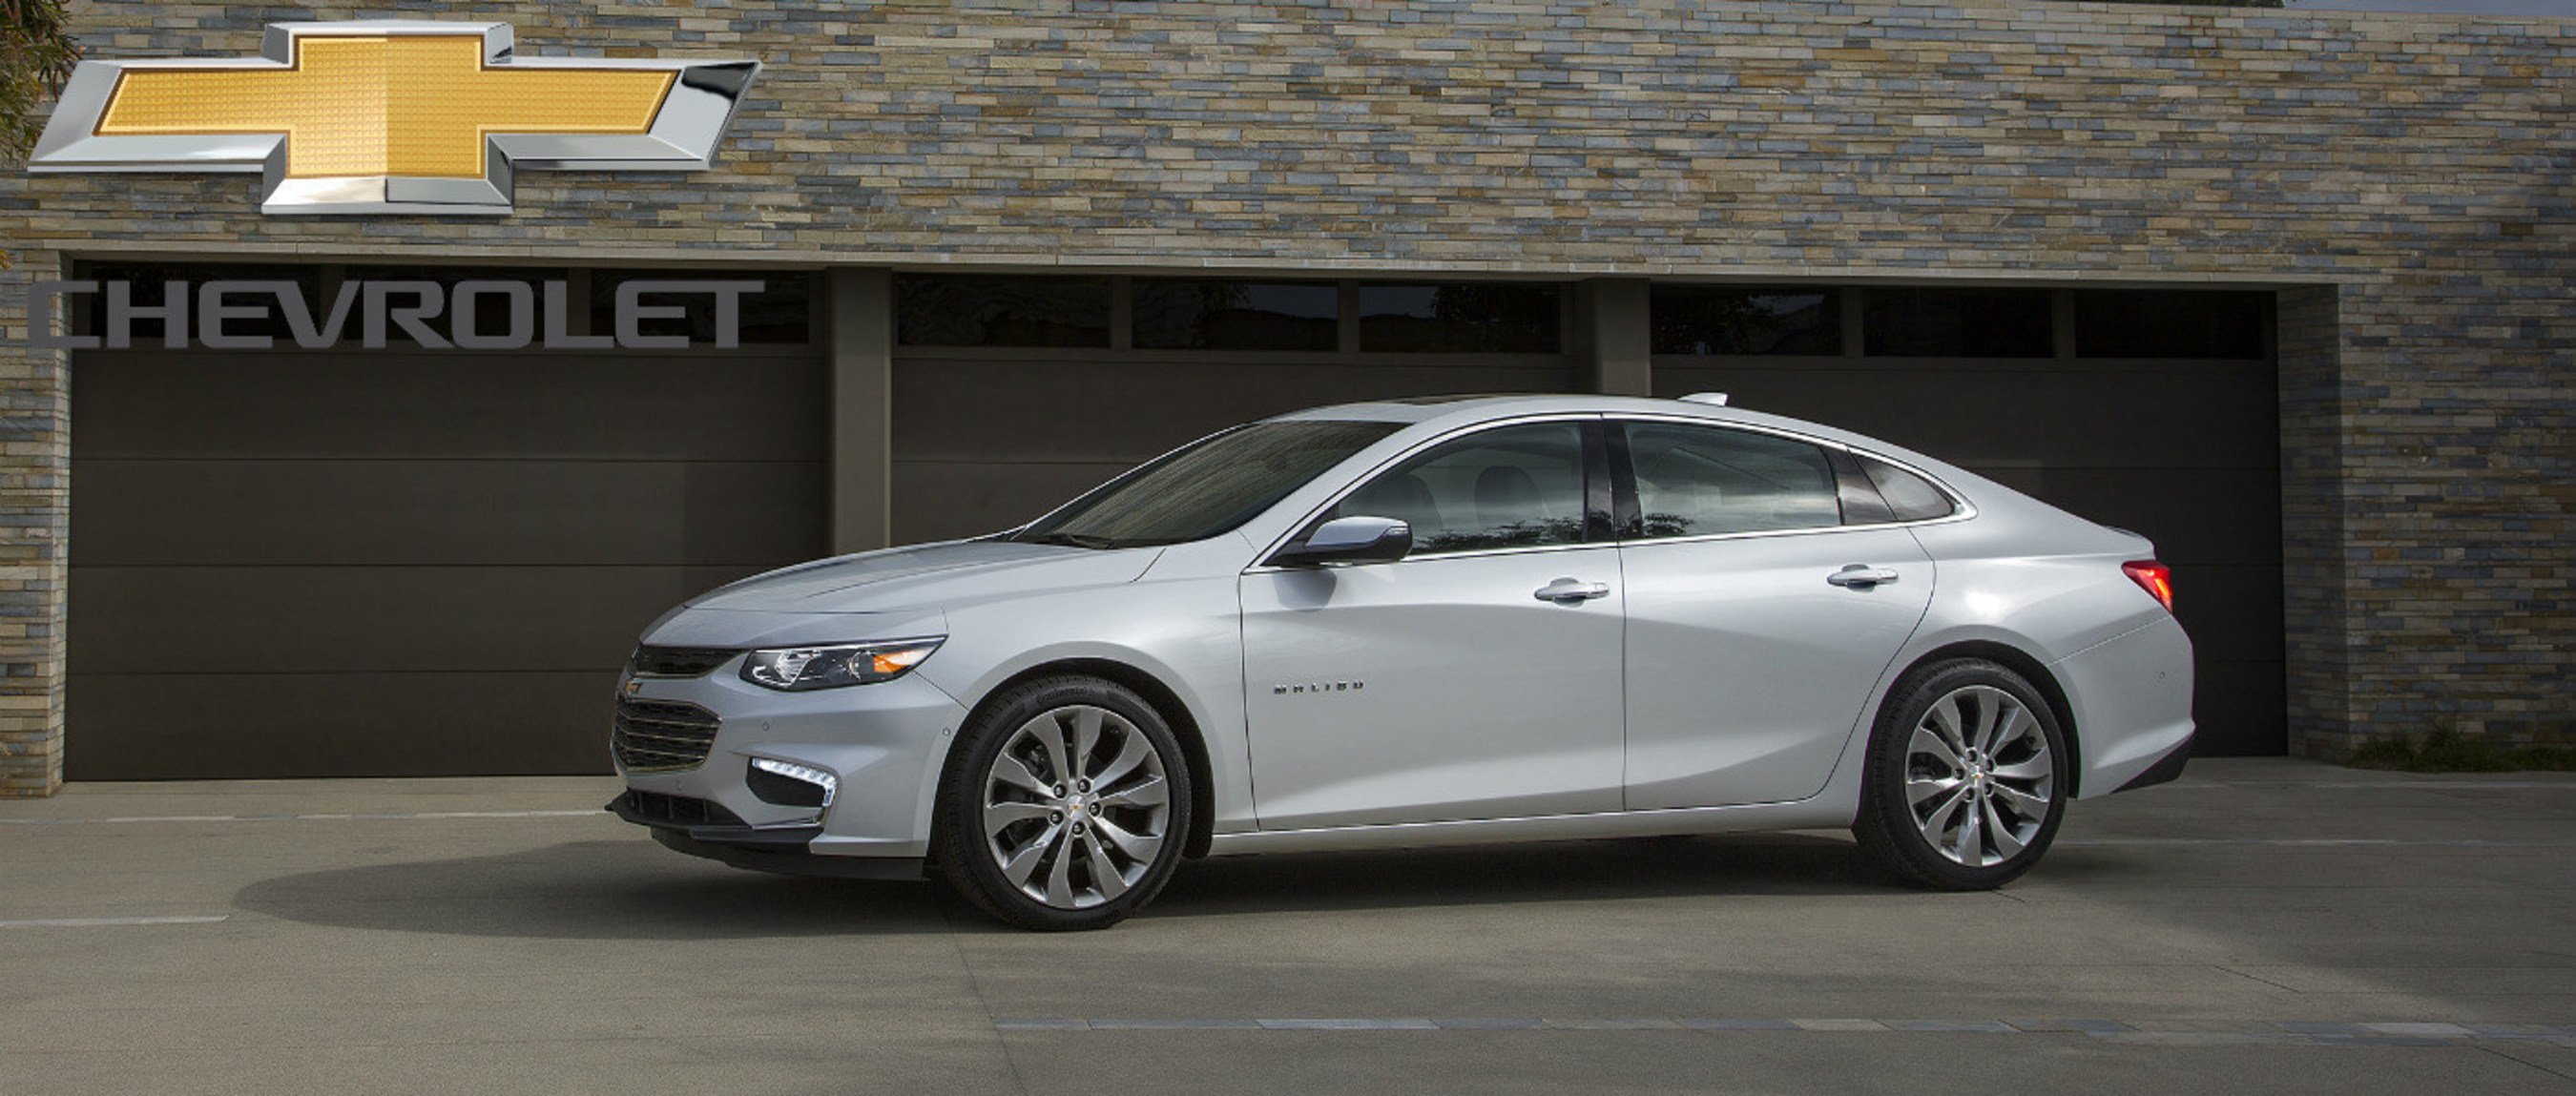 Chevrolet of Naperville features many 2016 models